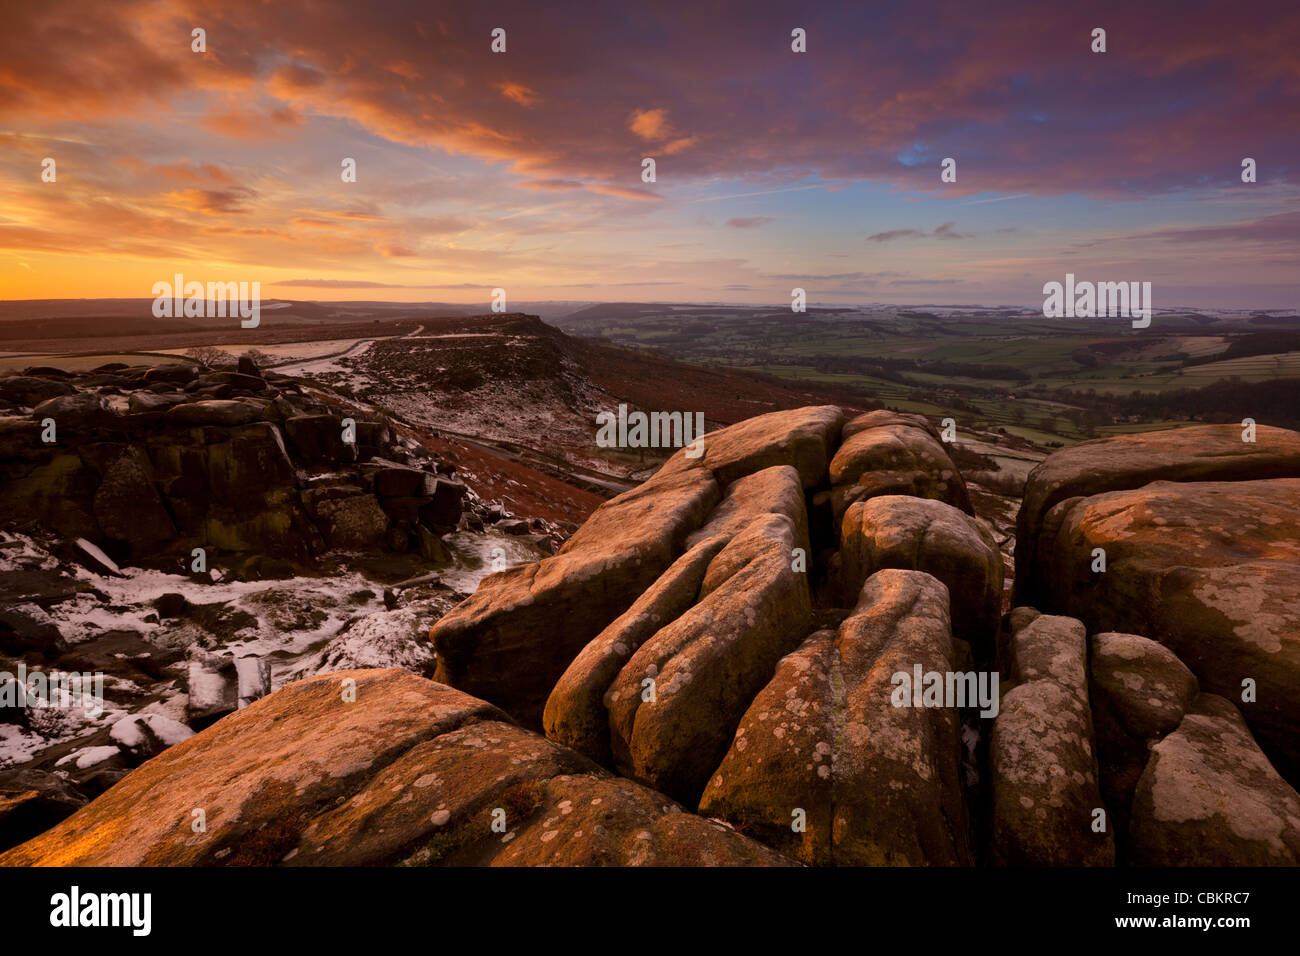 Winter on Curbar Edge, Peak District National Park, Derbyshire, England, UK - Stock Image